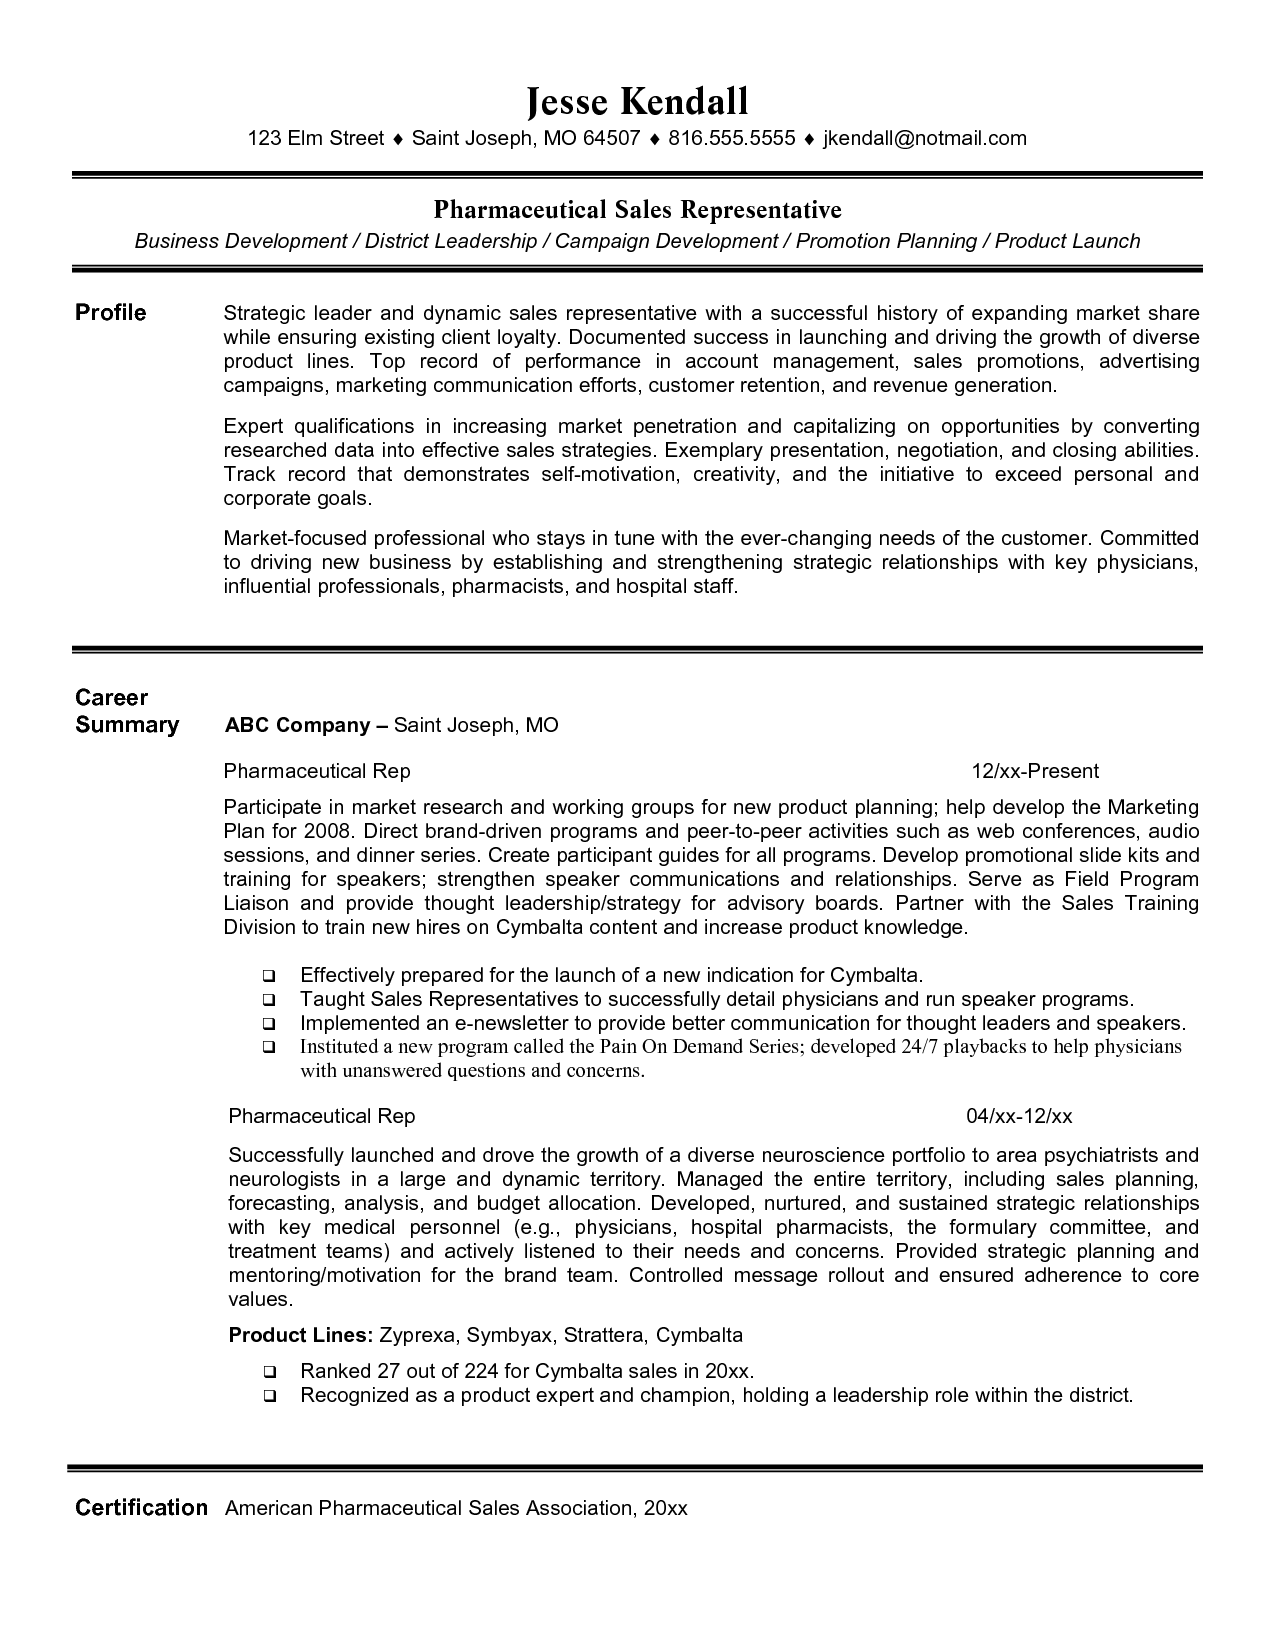 pharmaceutical sales rep resume sample entry level pharmaceutical sales resume - Medical Sales Resume Examples